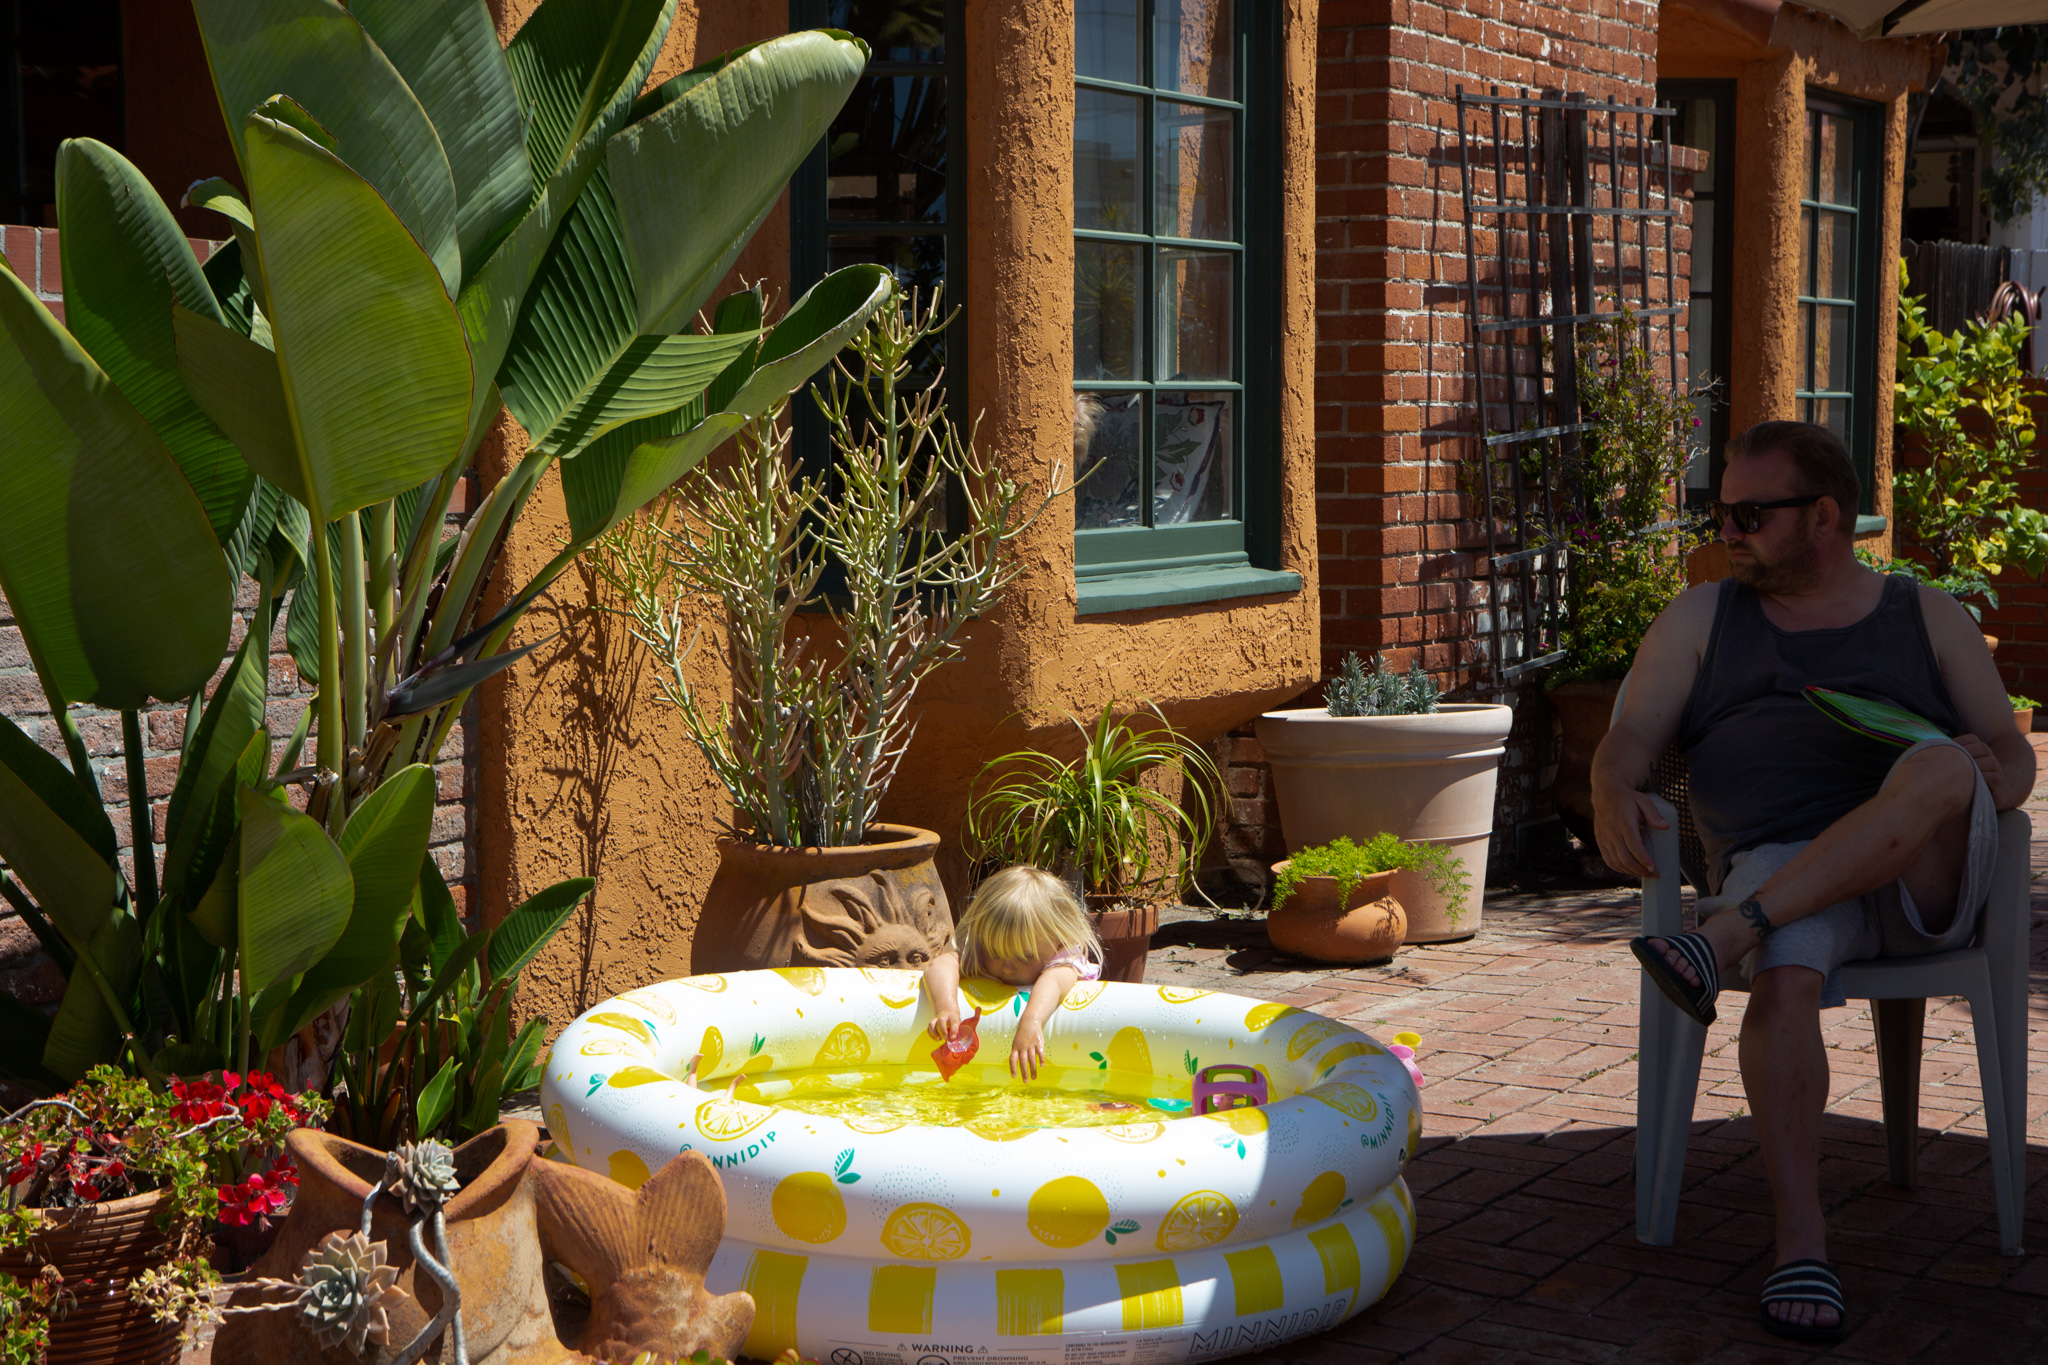 Bowie Davis, 3, plays in her kiddie pool while her father, Ed Davis, watches at their home during a heatwave on April 25, 2020 in Hermosa Beach, Calif.